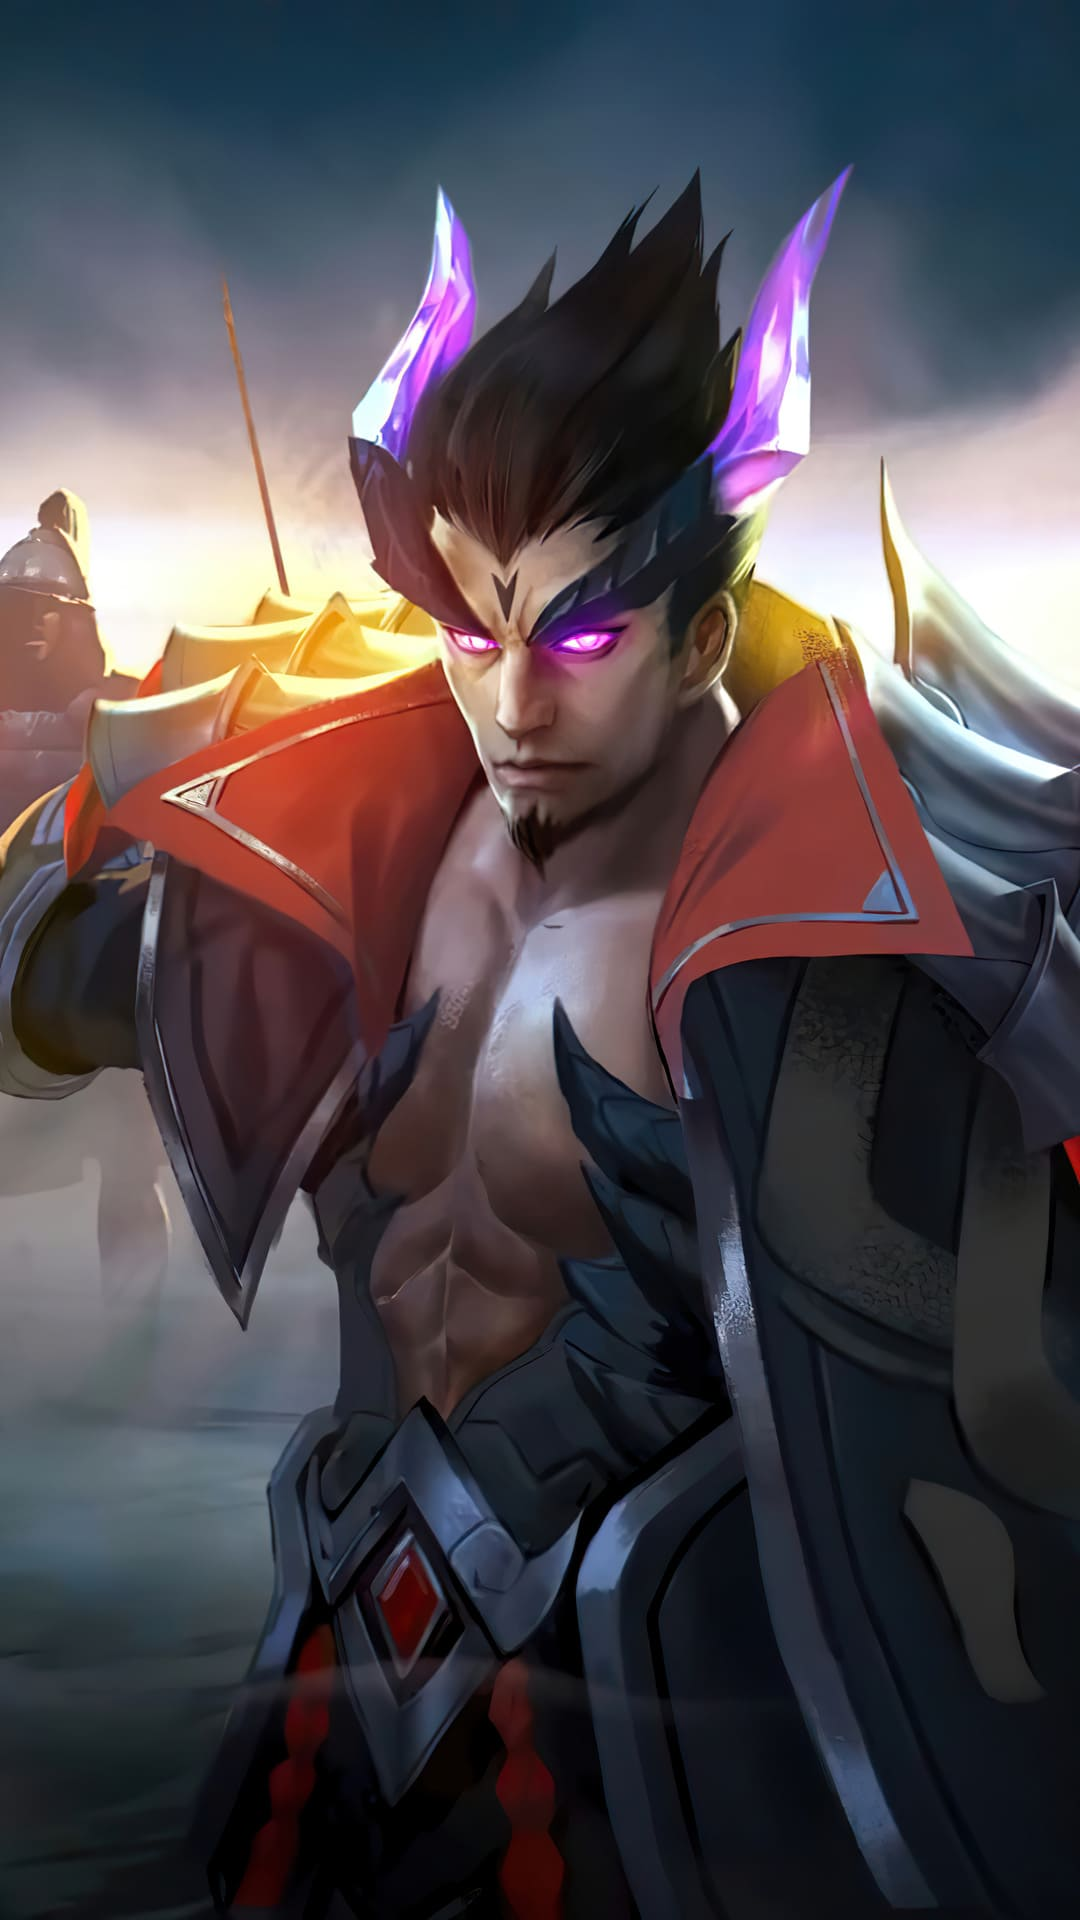 Wallpaper Yu Zhong Mobile Legends hd for mobile hobigame